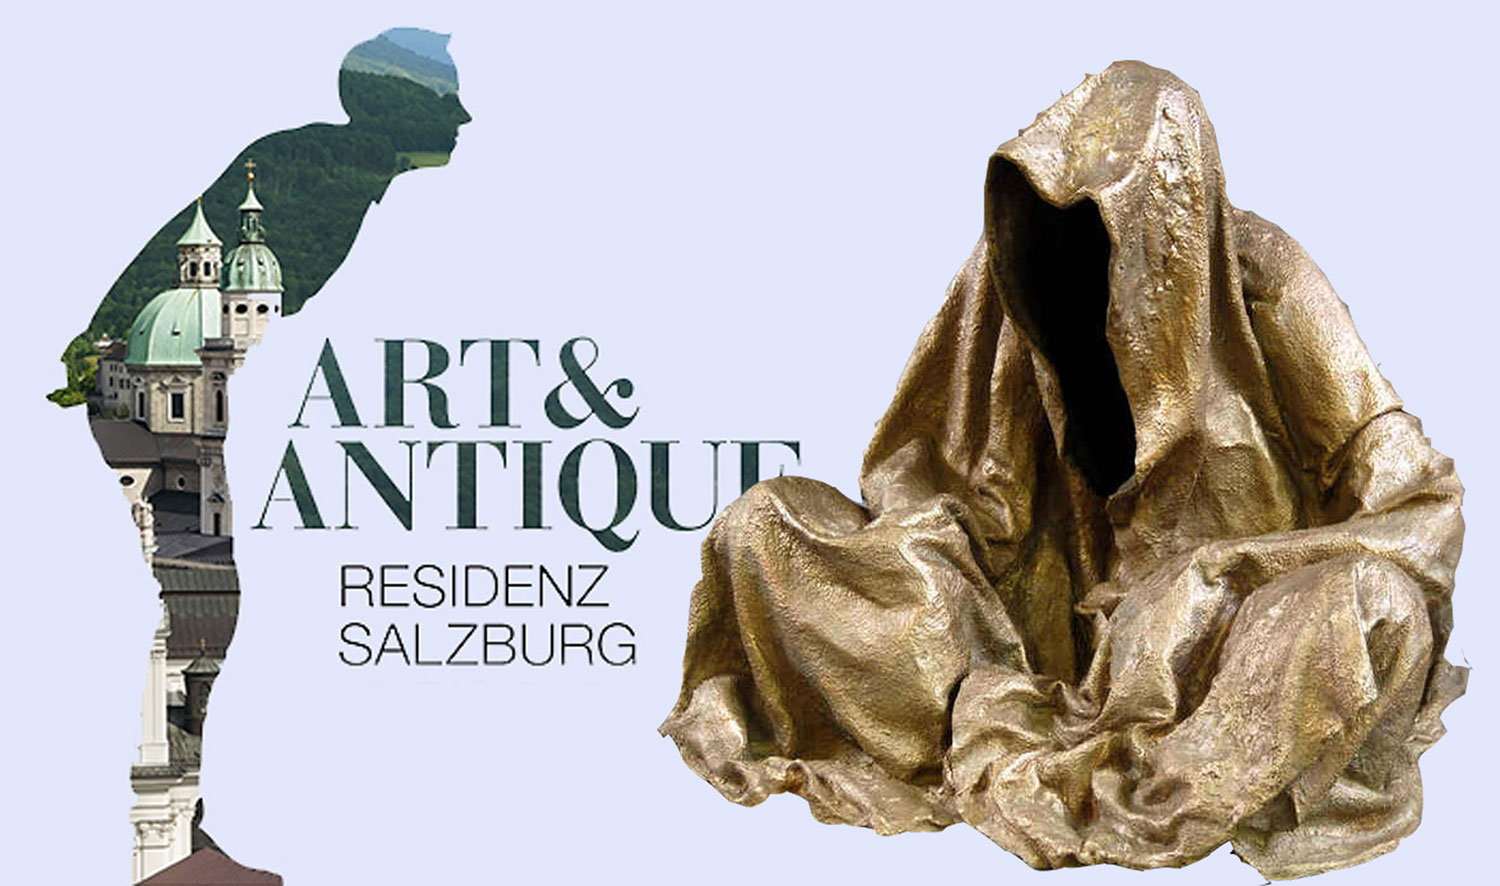 art-and-antiques-design-art-fair-residenz-salzburg-kunst-und-antiquitaetenmesse-austria-guardians-of-time-sculpture-fine-modern-contemporary-art-manfred-kielnhofer